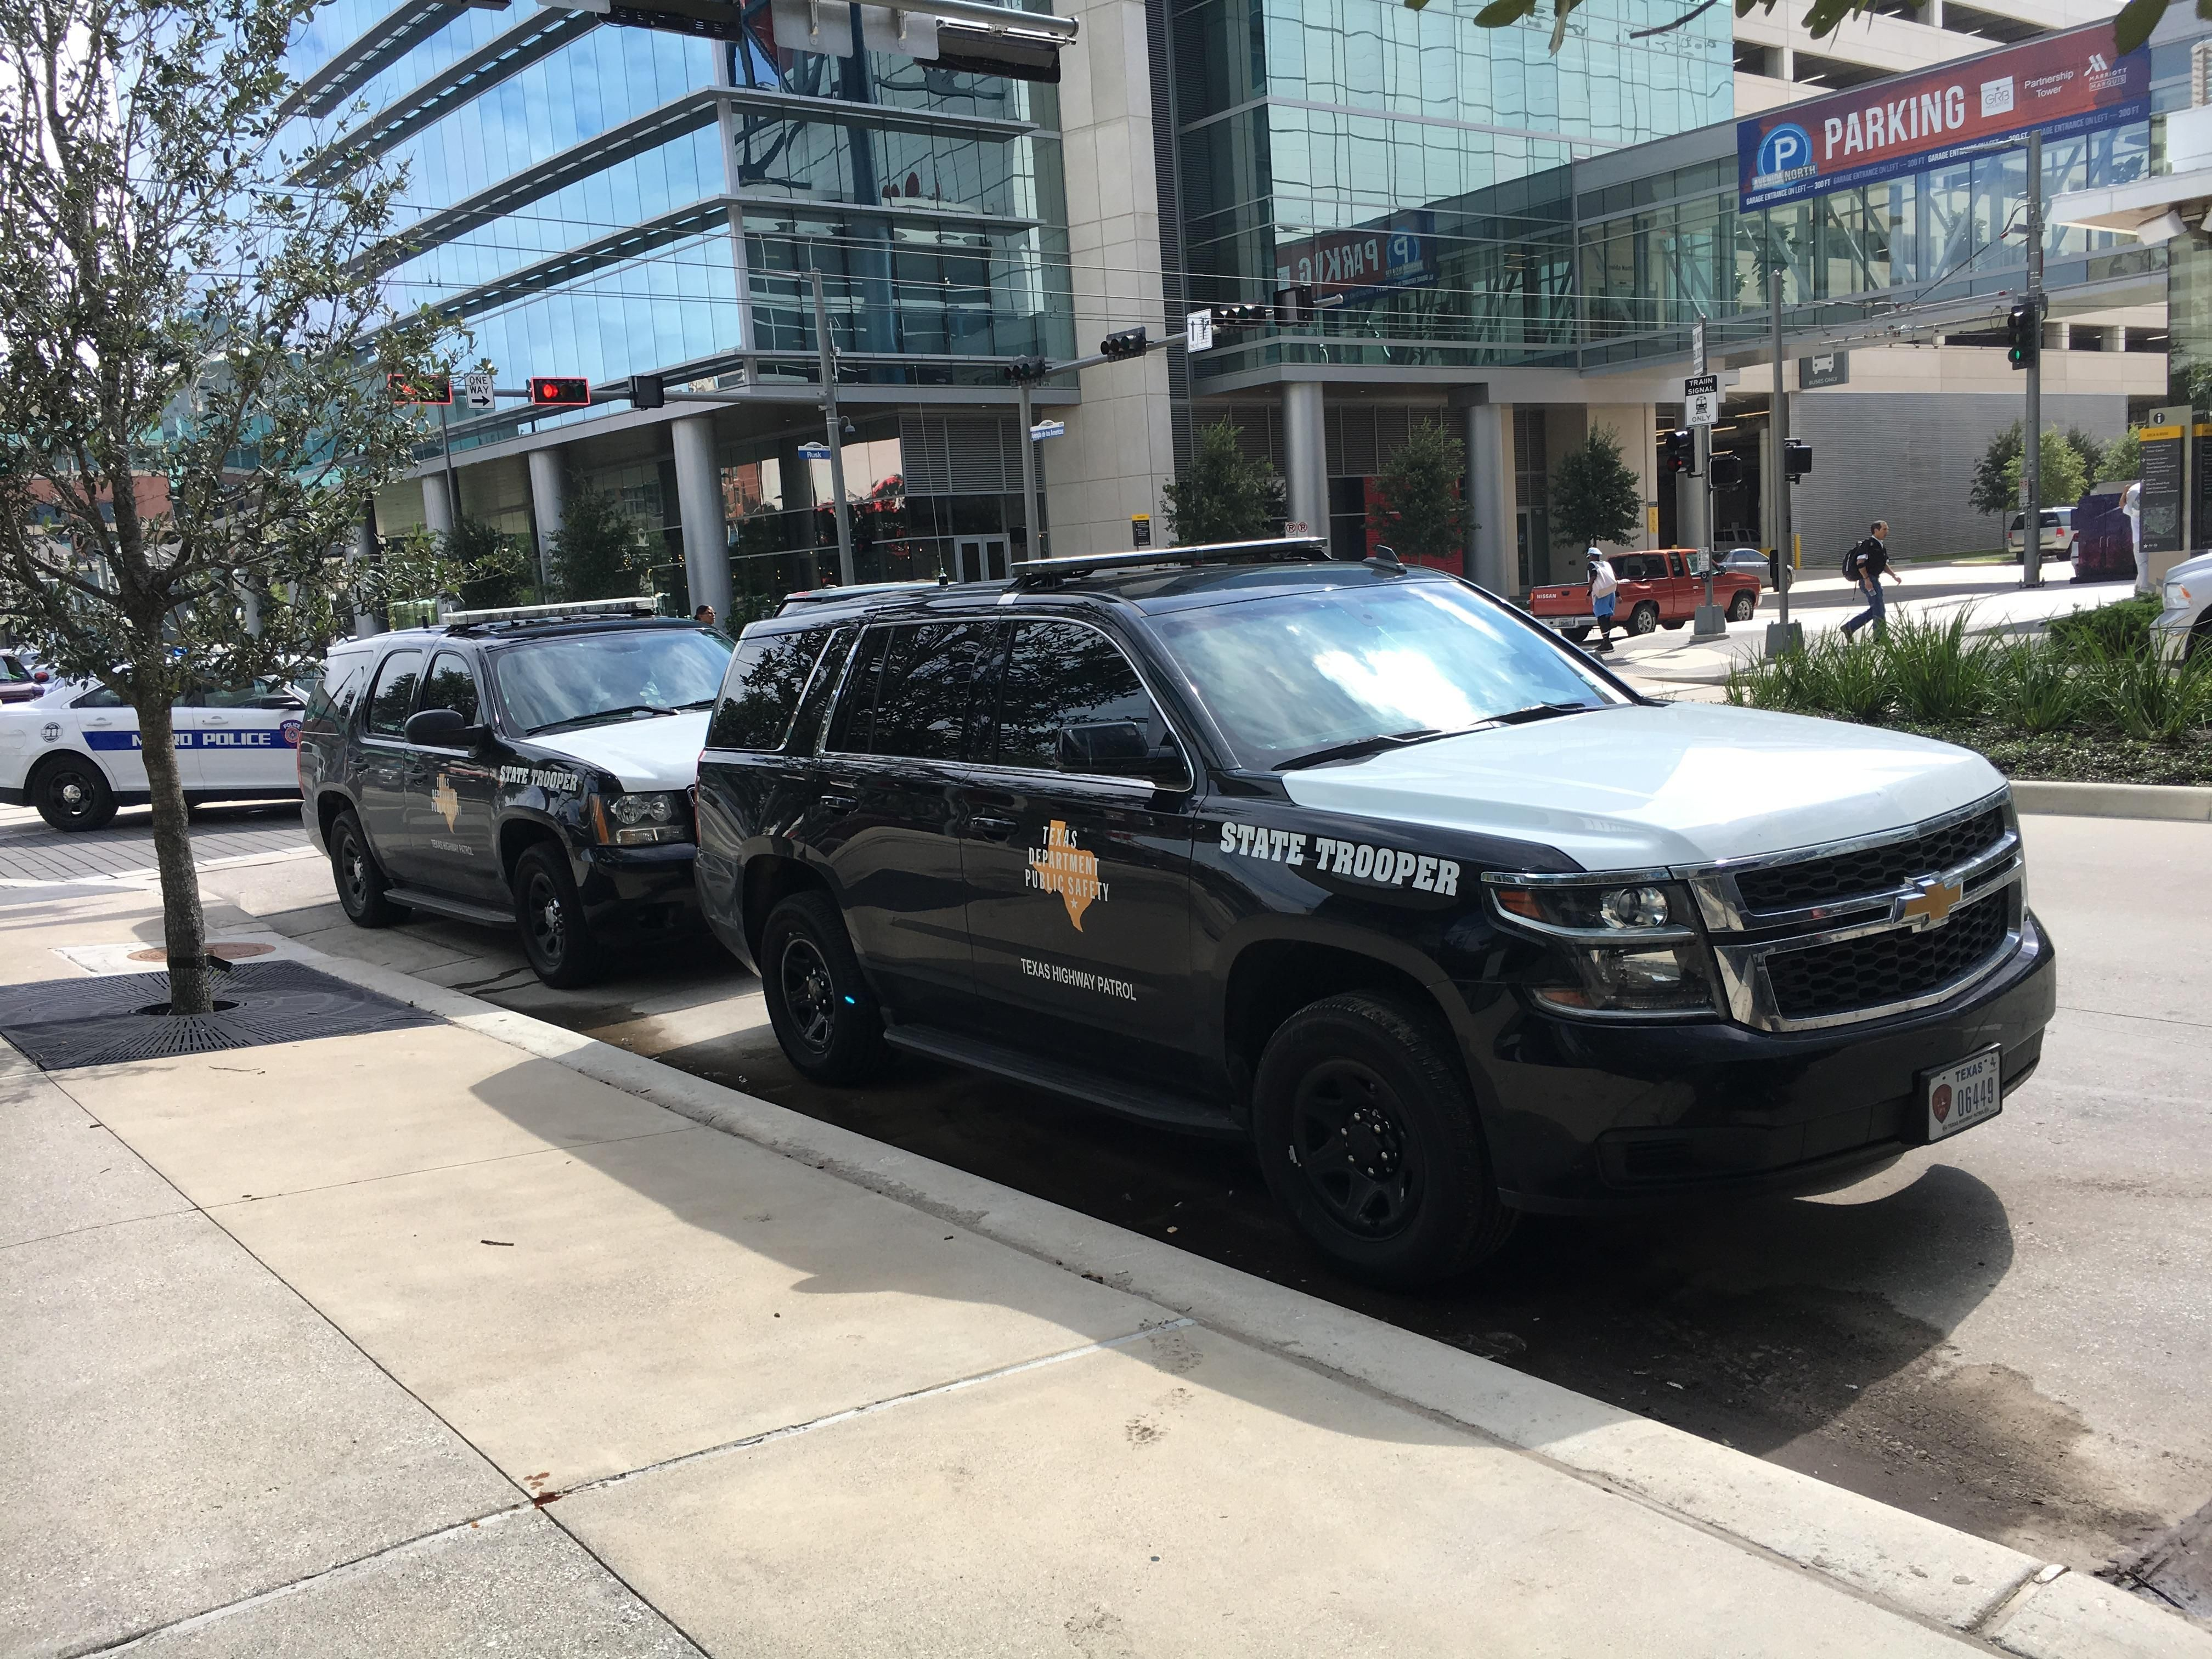 Texas Department of Public Safety Chevy Tahoes (Houston